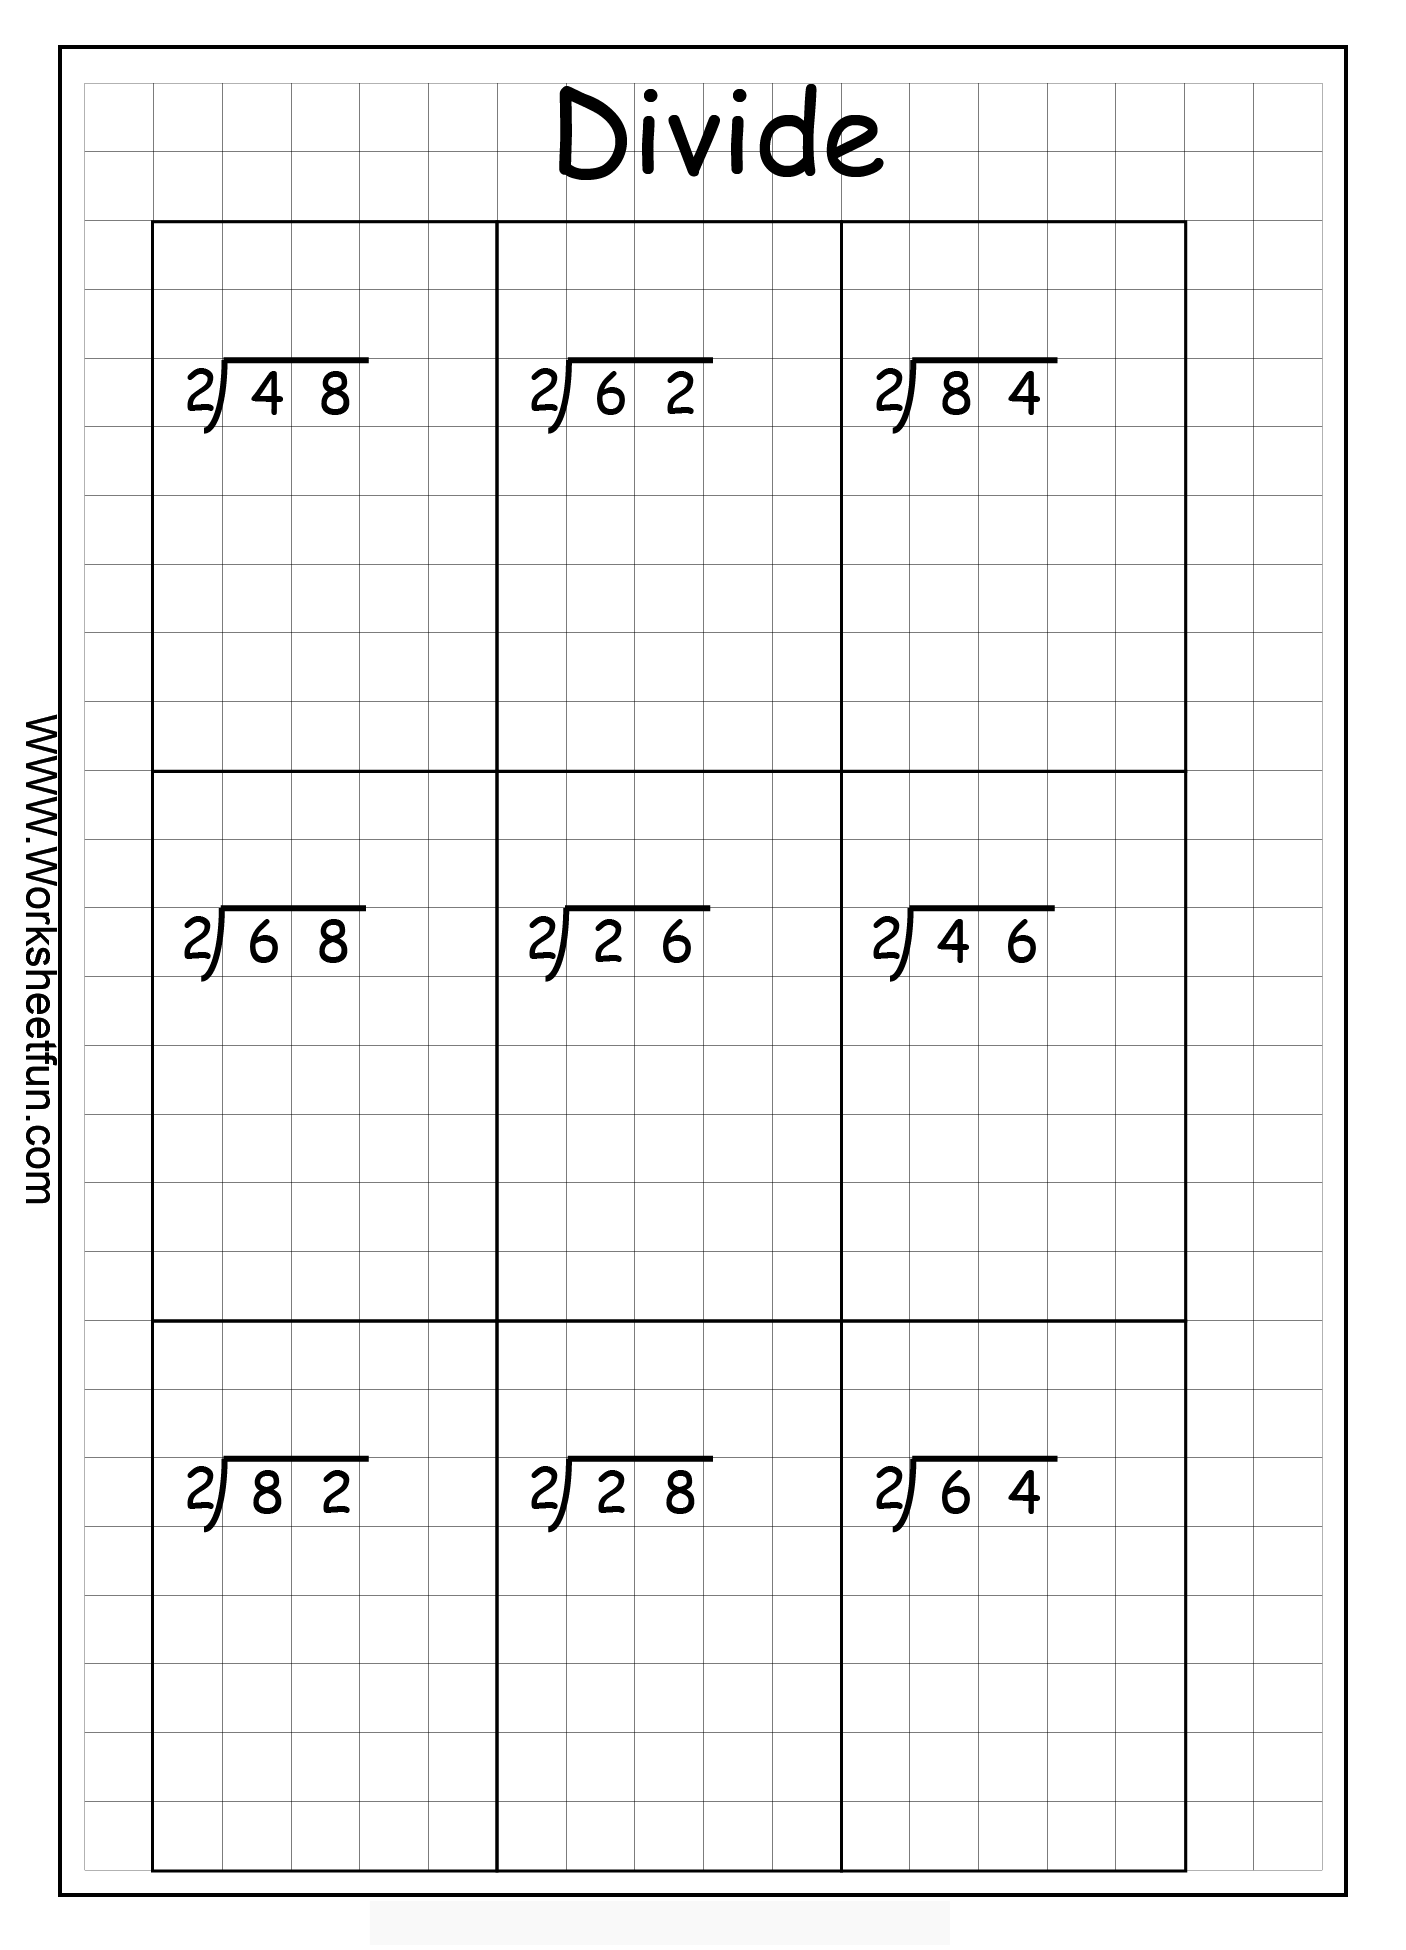 Long Division 2 Digits By 1 Digit No Remainder 10 Worksheets – Math Worksheets Division with Remainders